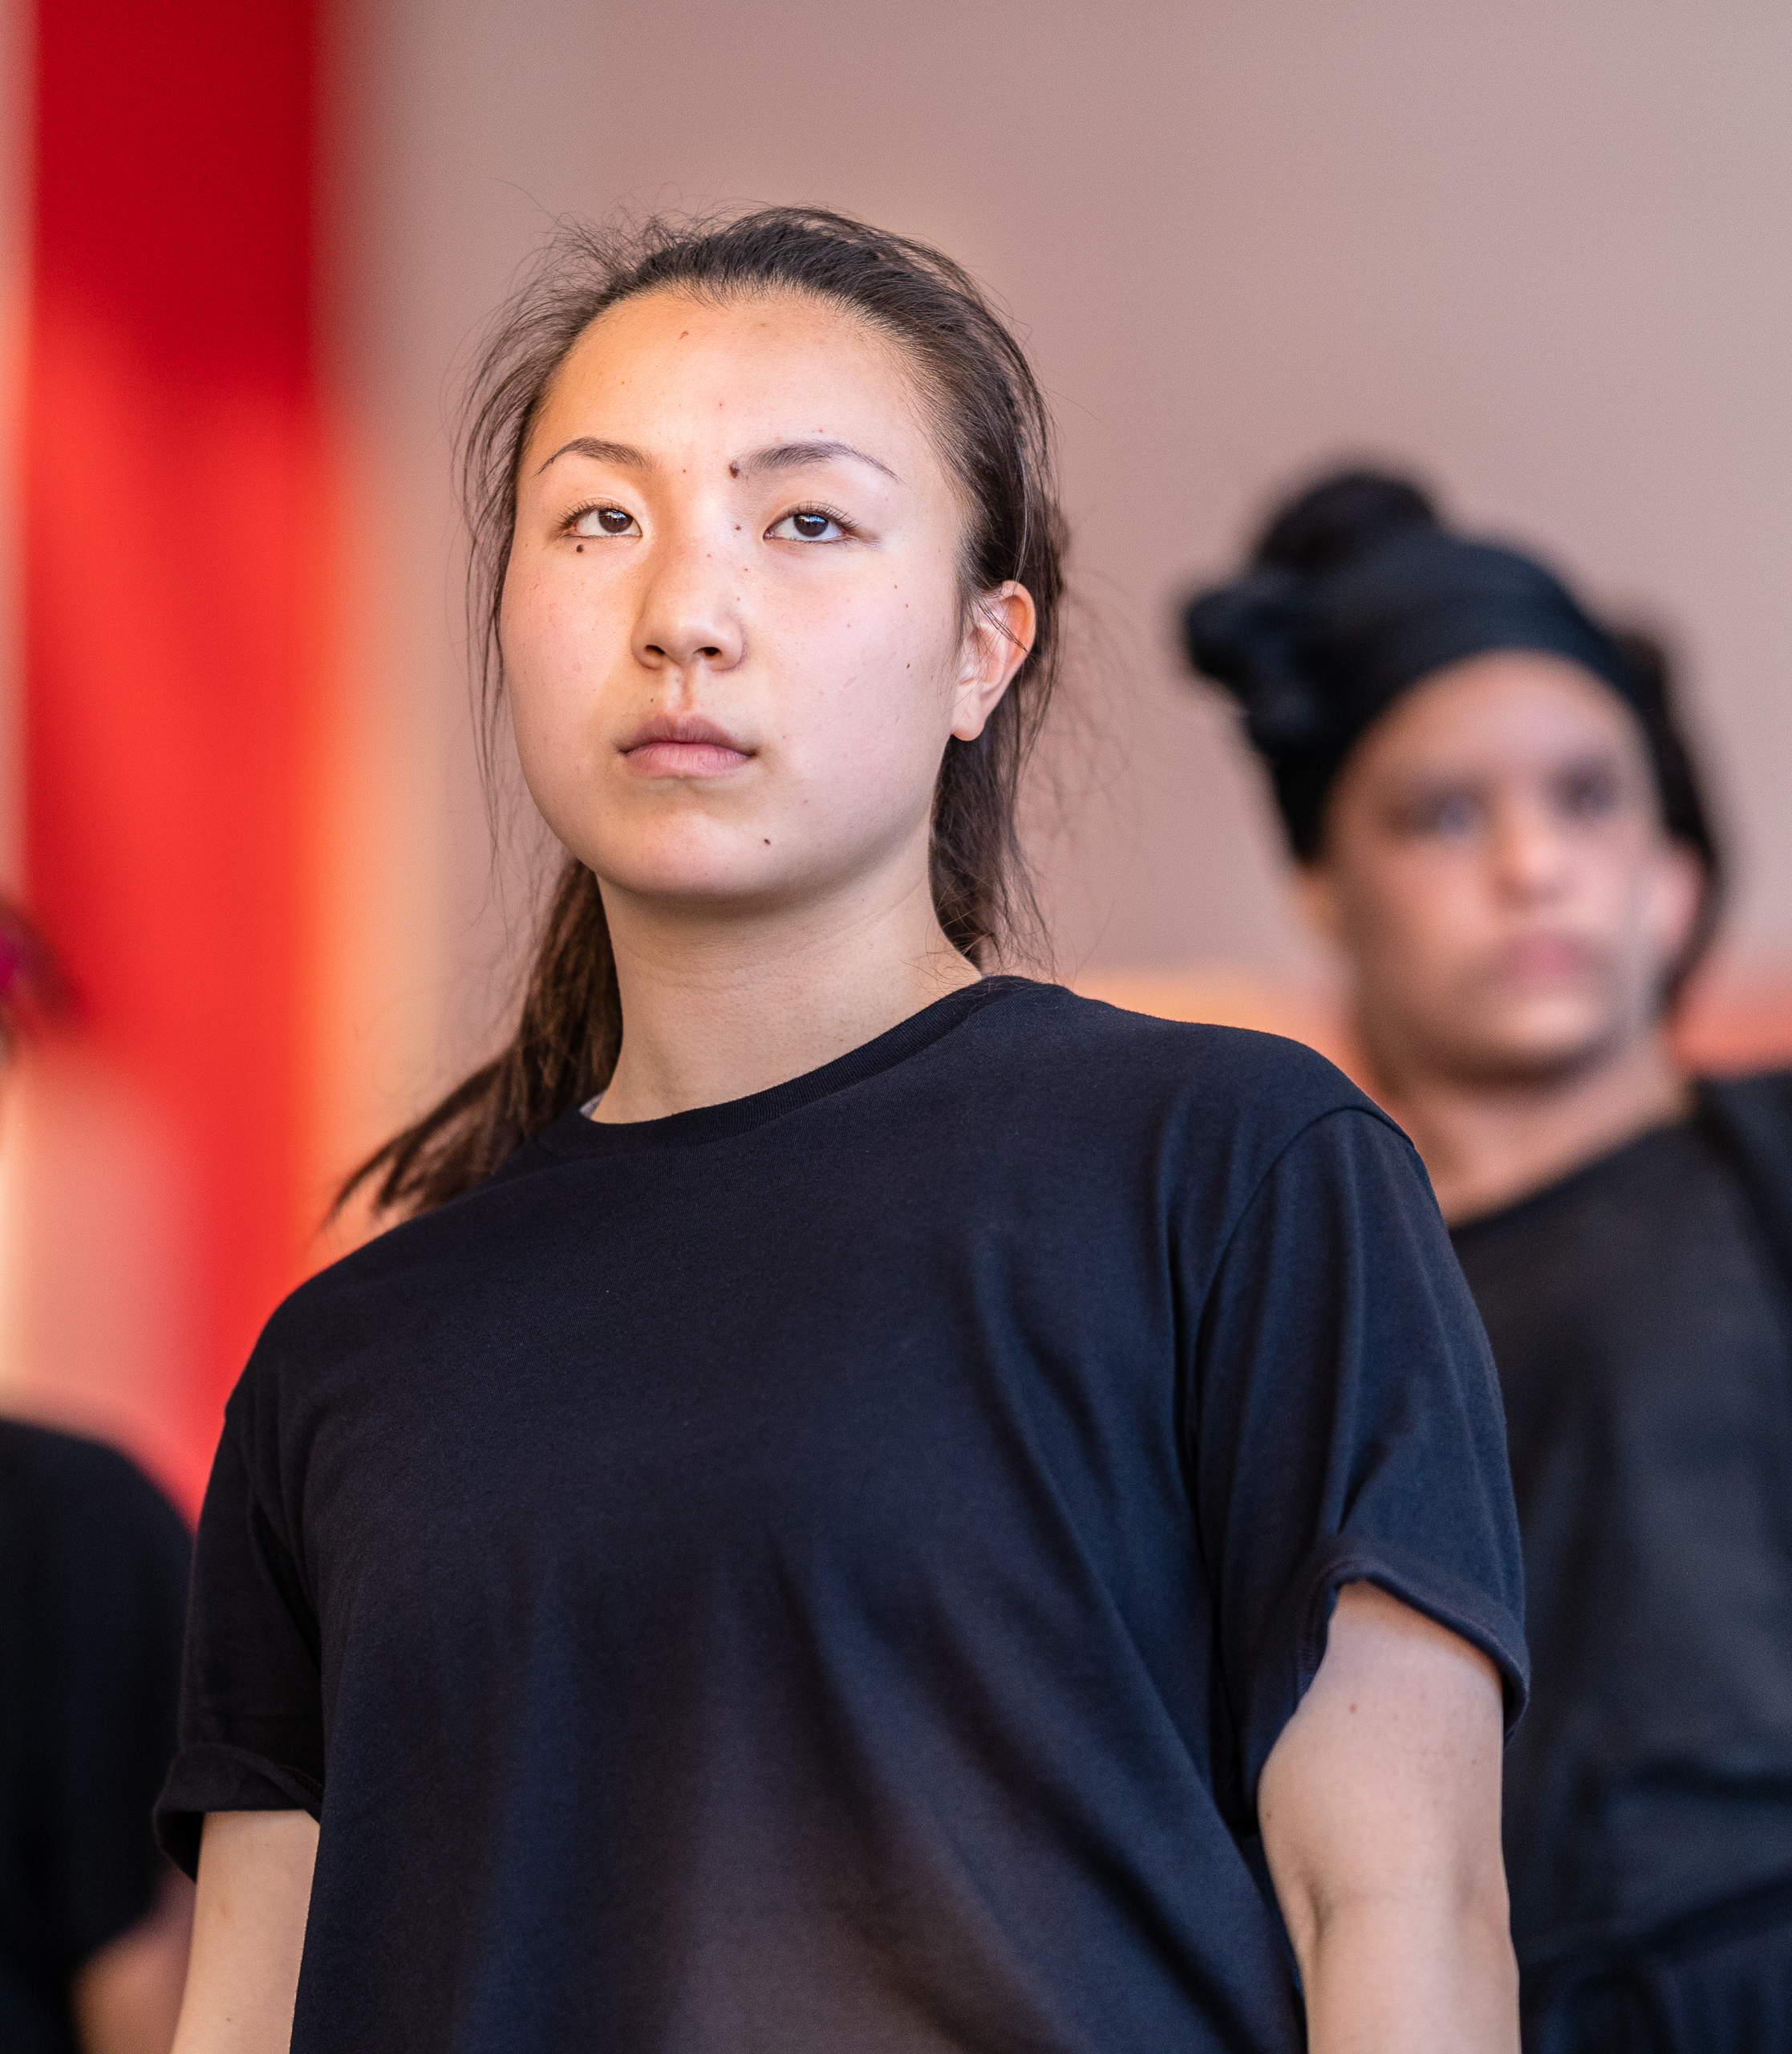 "SMC dance major Aya Nakaguchi rehearses for ""equalizer_"", a new work by guest choreographer Jay Carlon in SMC's Core Performance Center (CPC) on Tuesday, April 2, 2019. ""equalizer_"" and Nakaguchi's not-yet-titled new work are two of the eleven works that will be presented in Synapse Dance Theater on the SMC Broad Stage at the Performing Arts Center (PAC) on Friday and Saturday, May 24 and 25. (Glenn Zucman/The Corsair)"